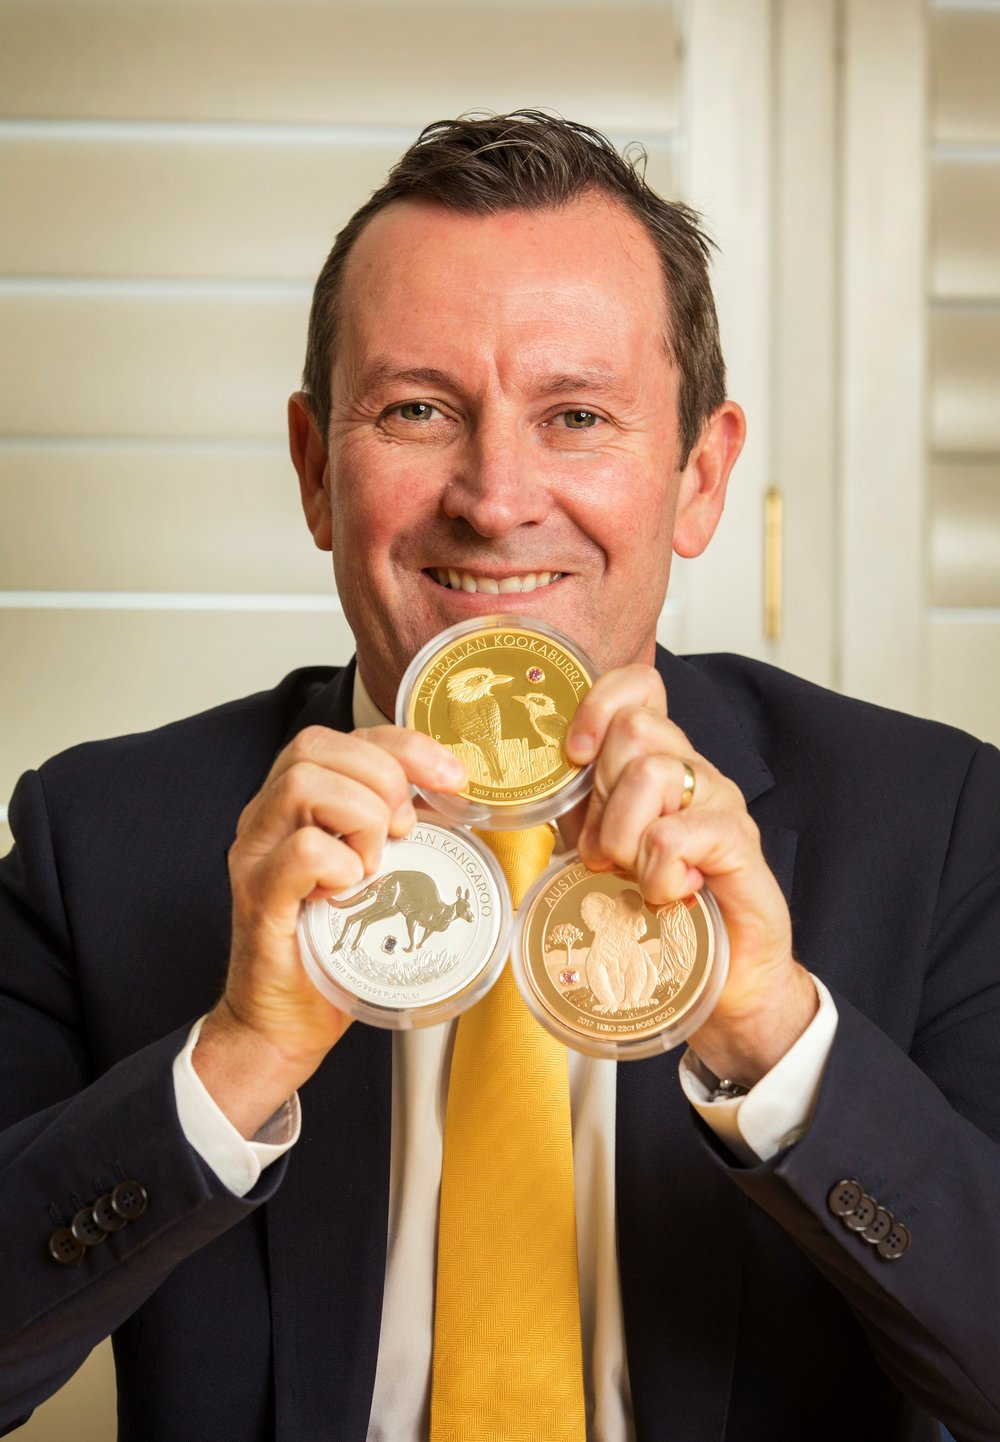 Honourable Mark McGowan MLA holding The Australian Trilogy